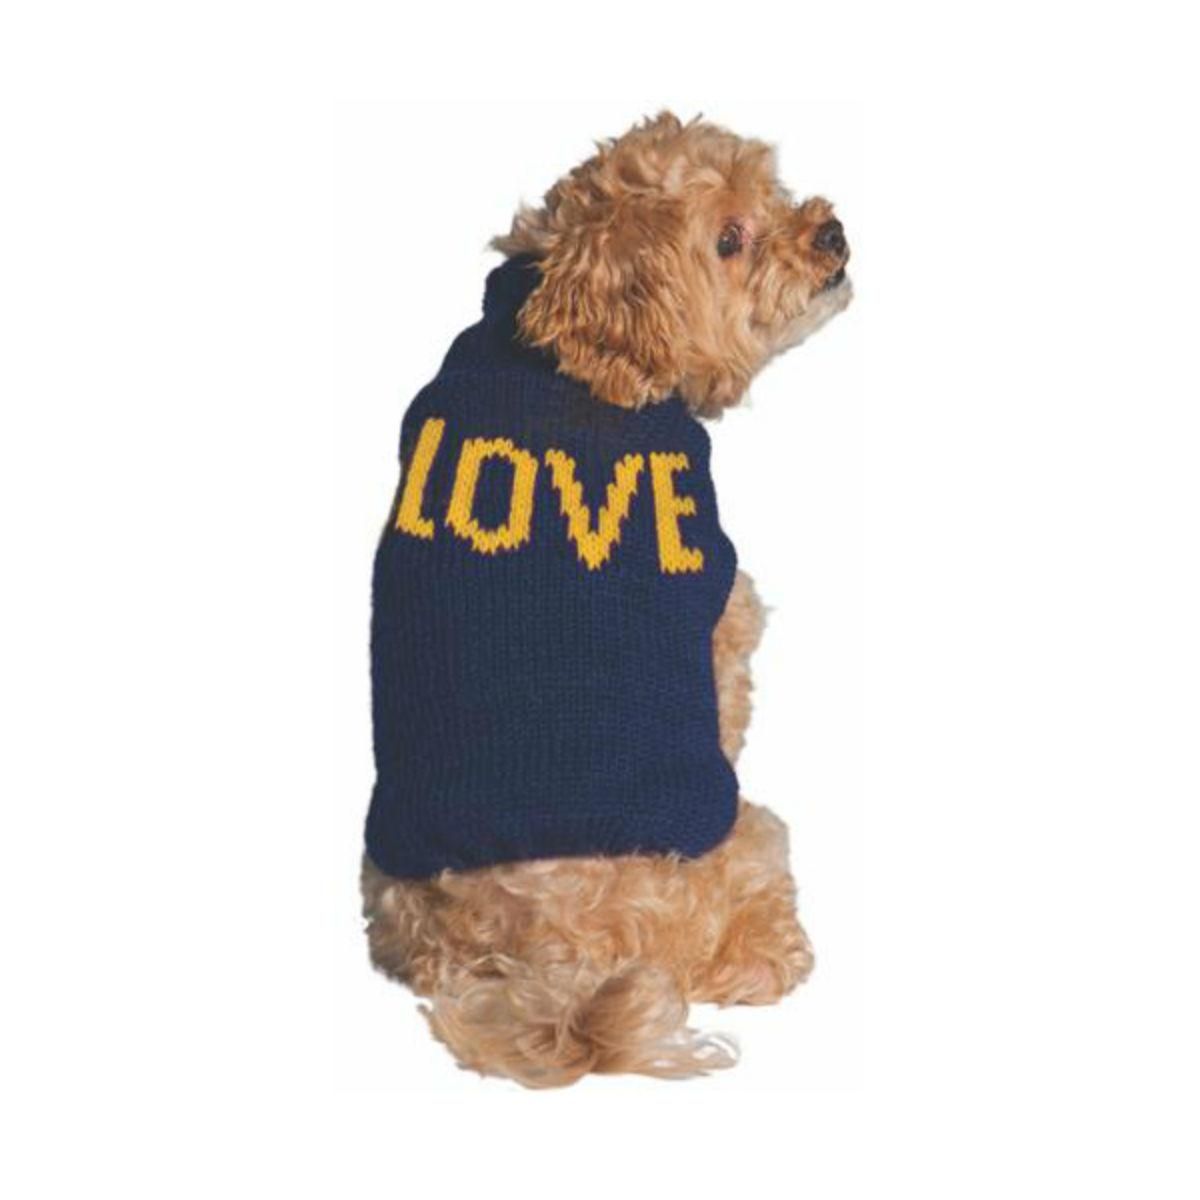 Handmade Alpaca Love Dog Sweater - Navy